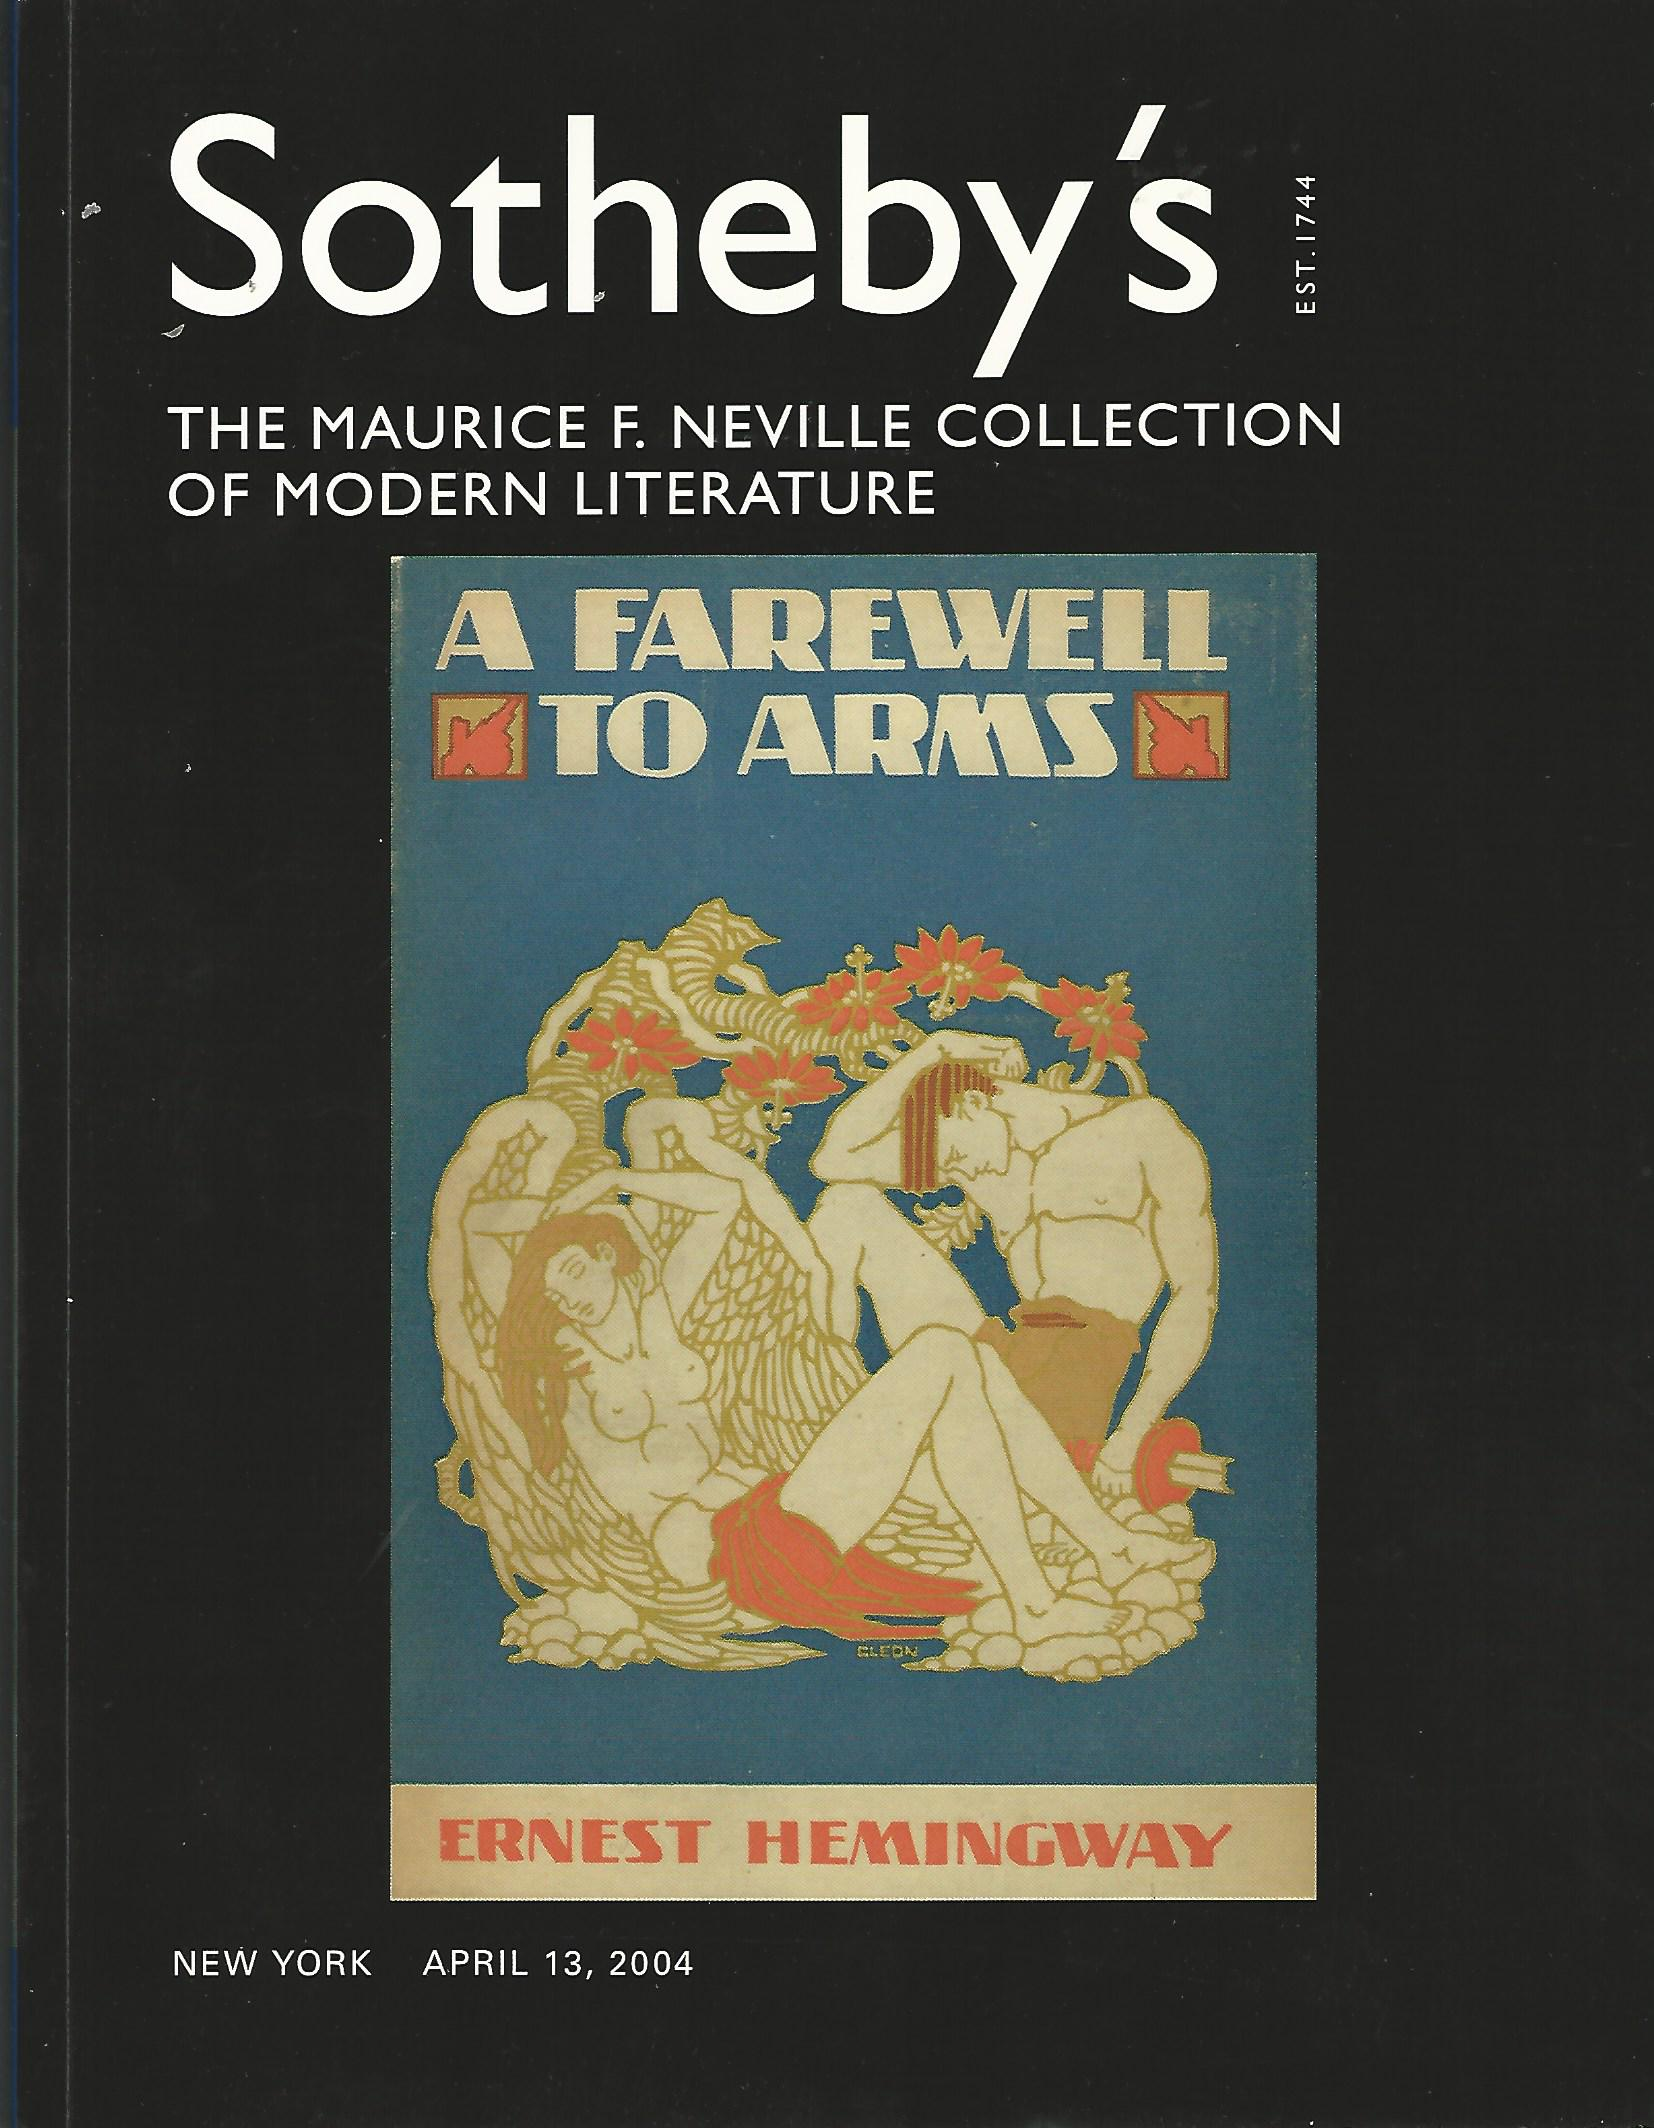 Image for Sotheby's: The Maurice F. Neville Collection of Modern Literature.